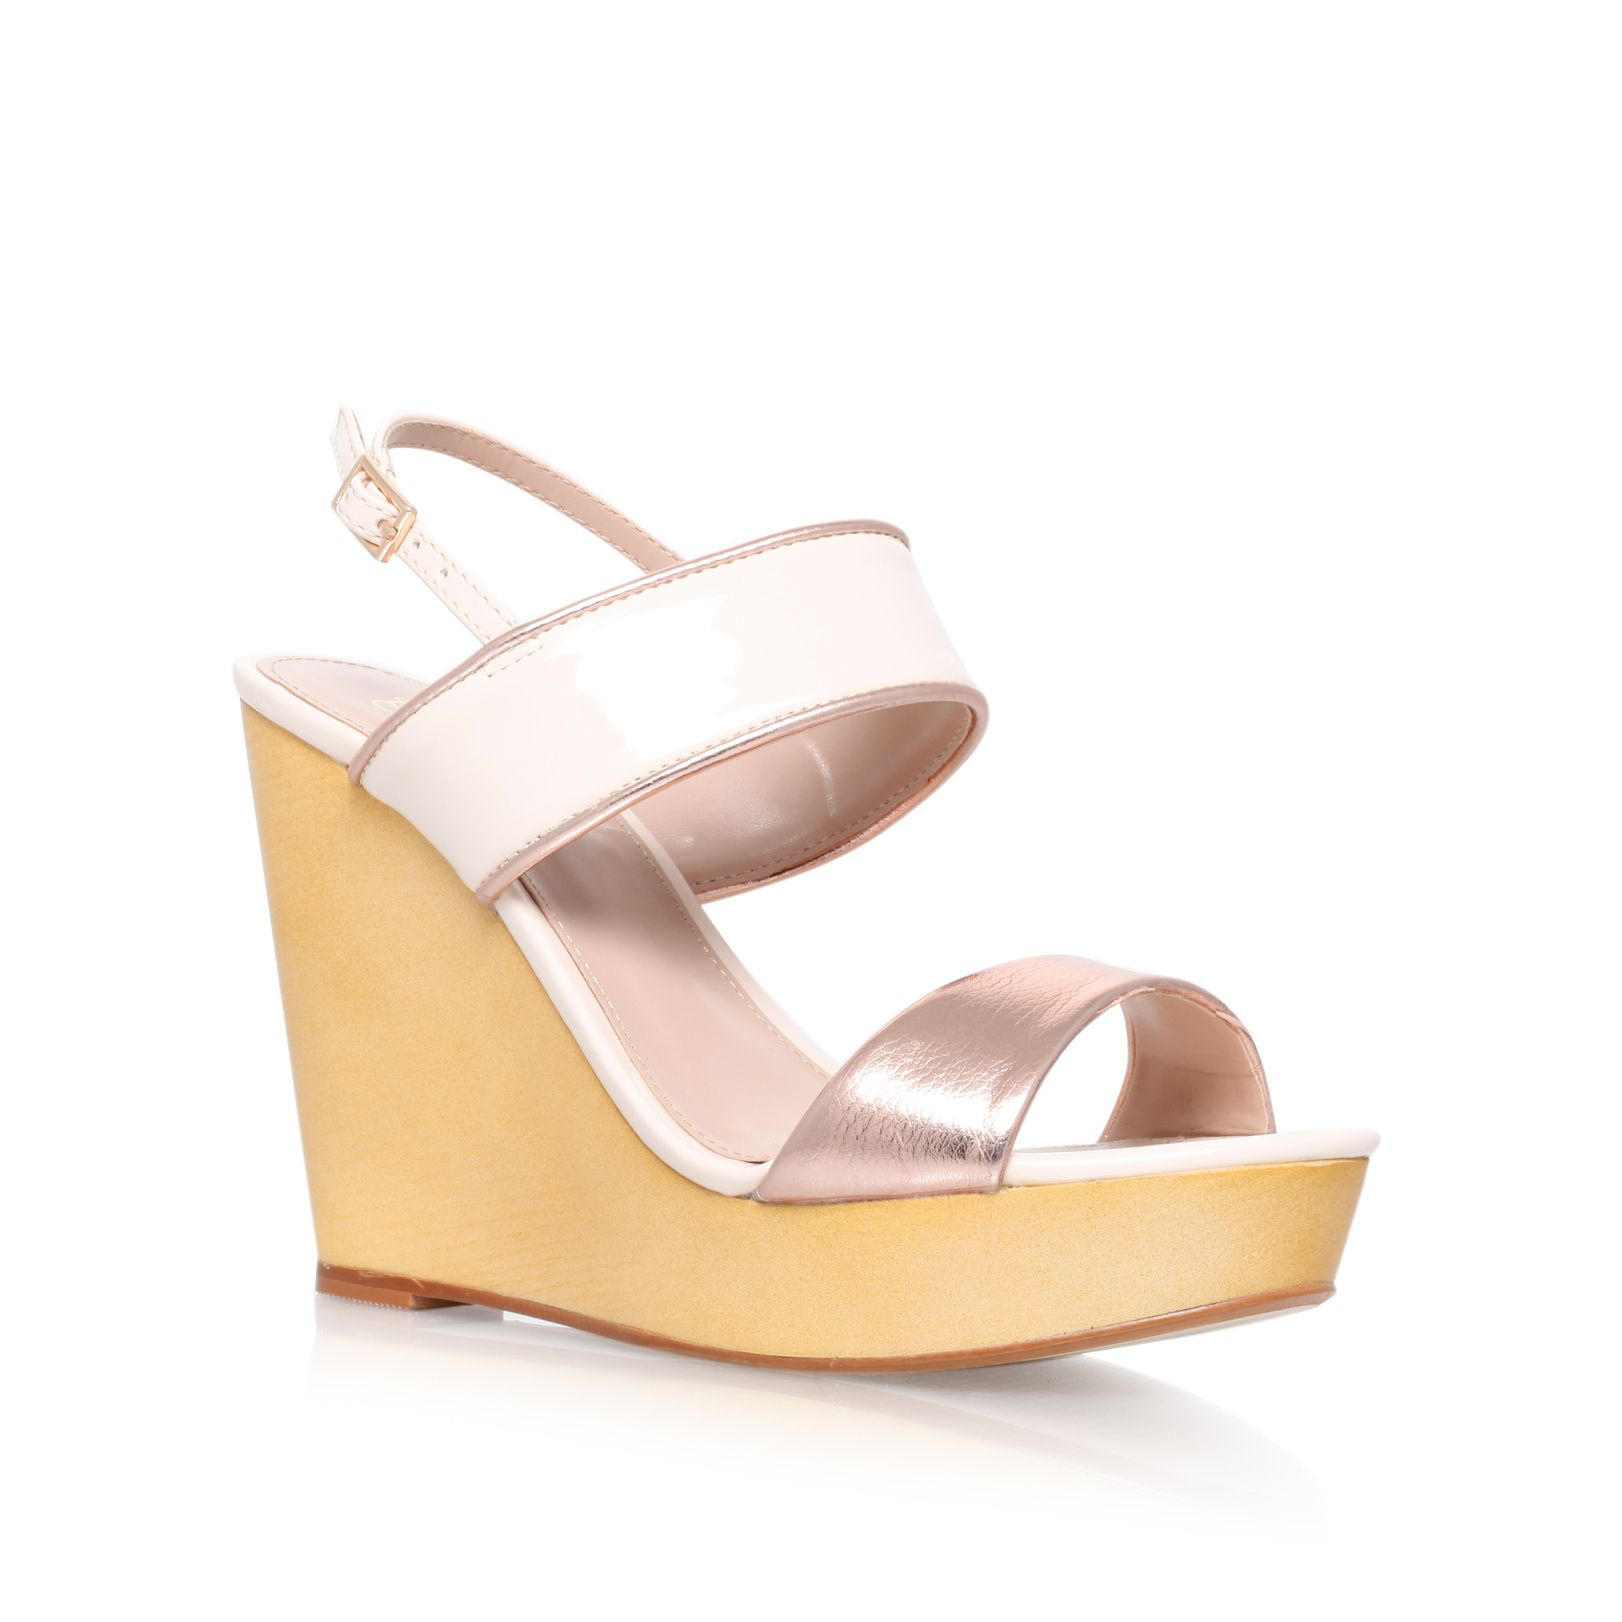 f3a932bc52e6 Lyst - Lipsy Molly Wedge Sandals in Natural